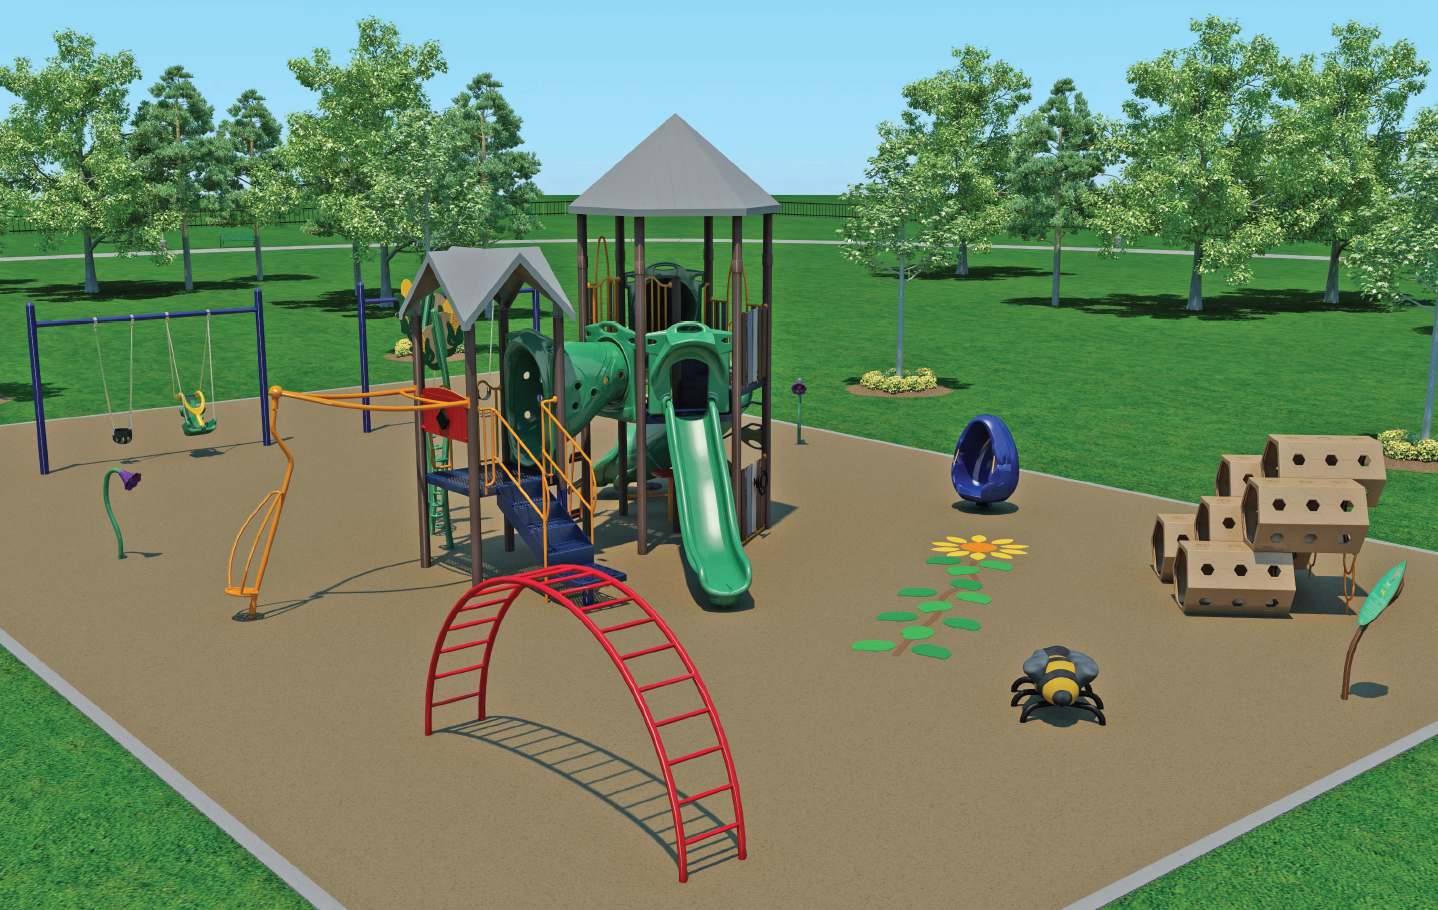 Artist rendering of the new Fidelis Park playground